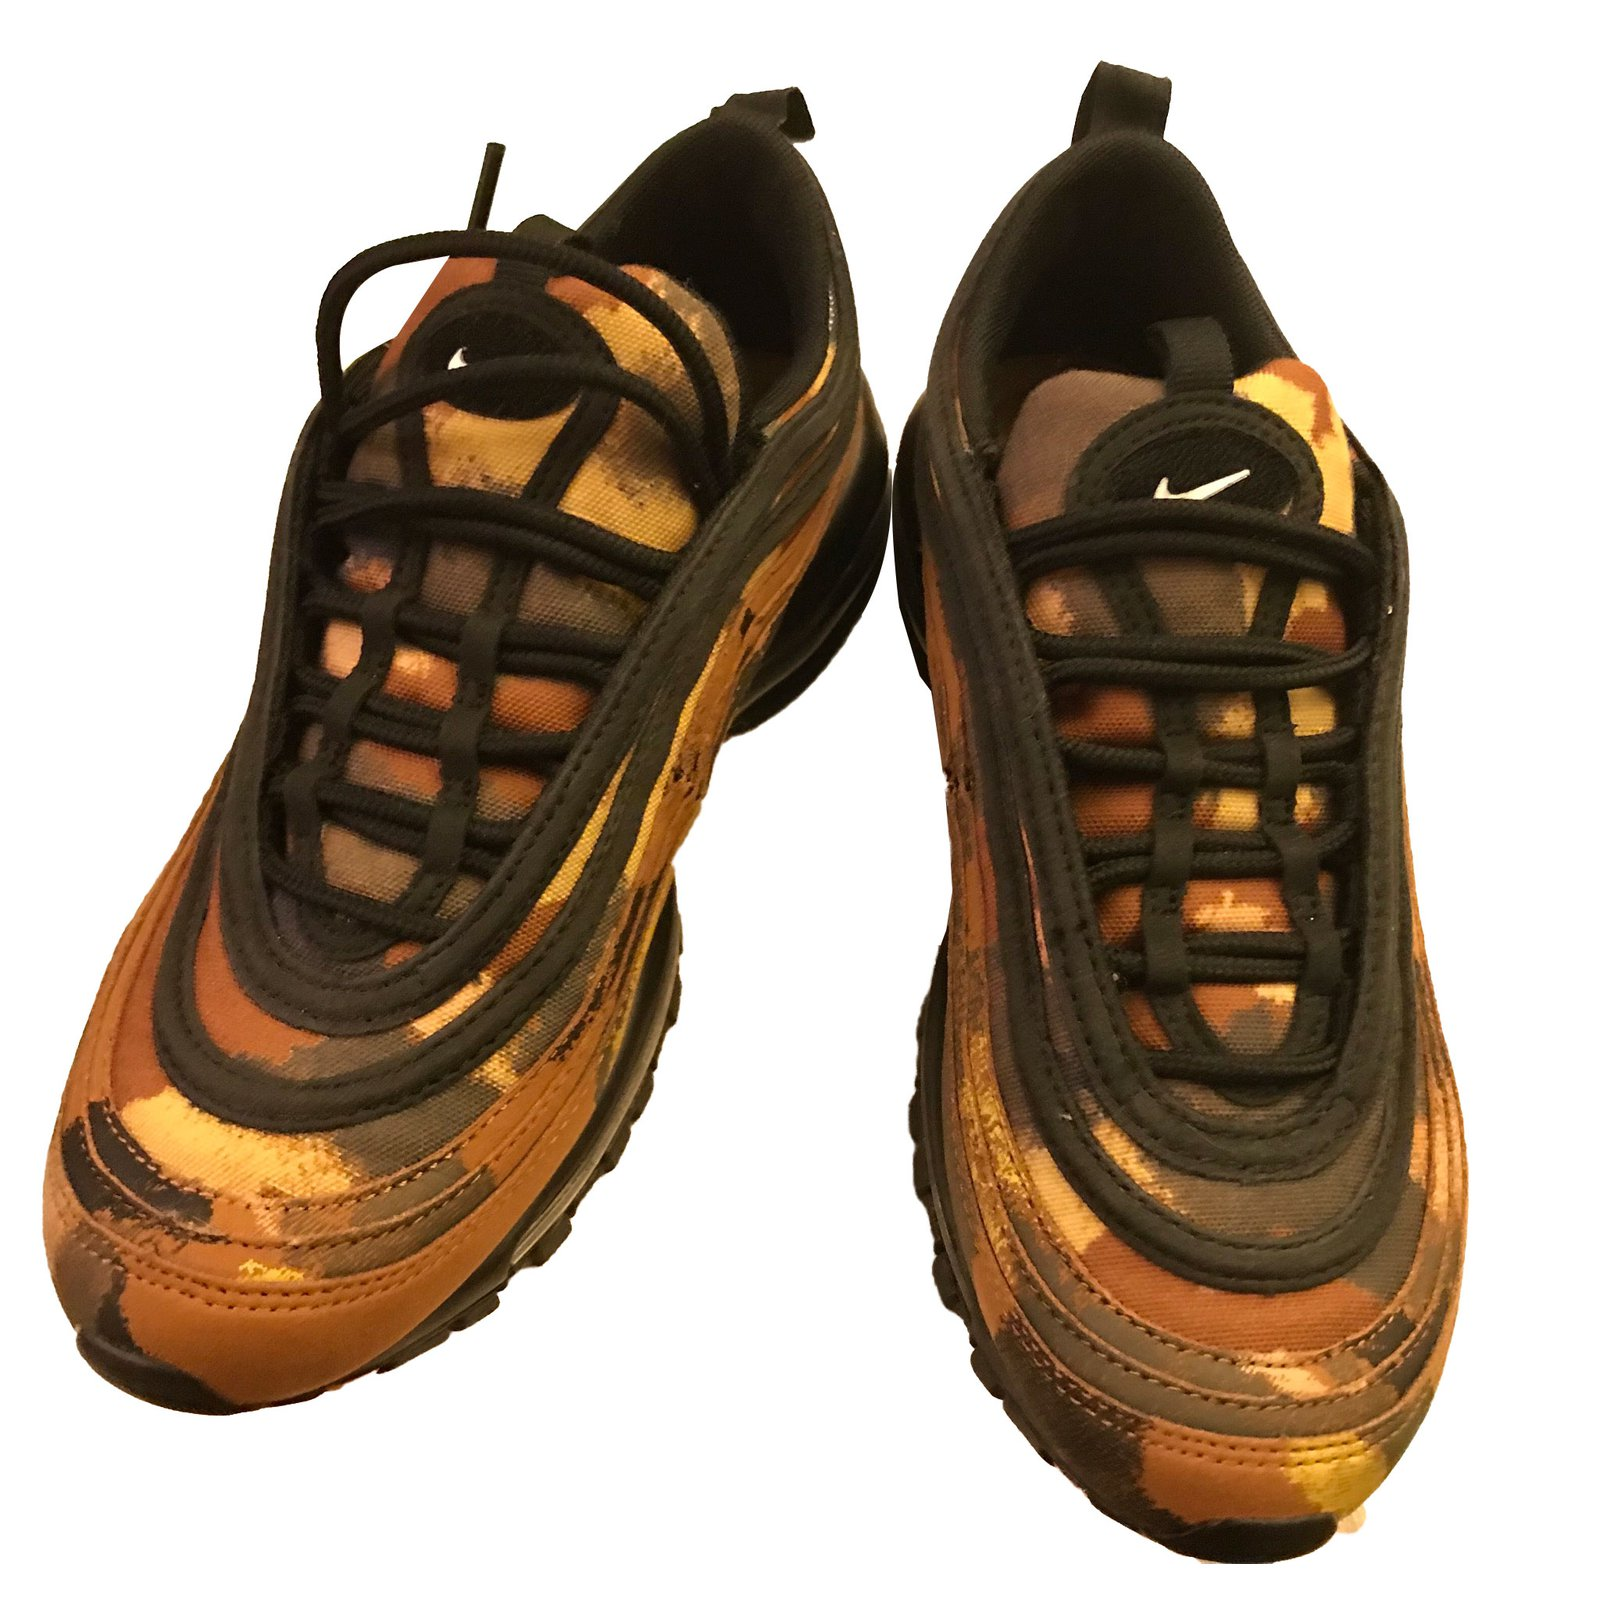 finest selection d4652 f941d Air Max 97 Camo Limited Edition